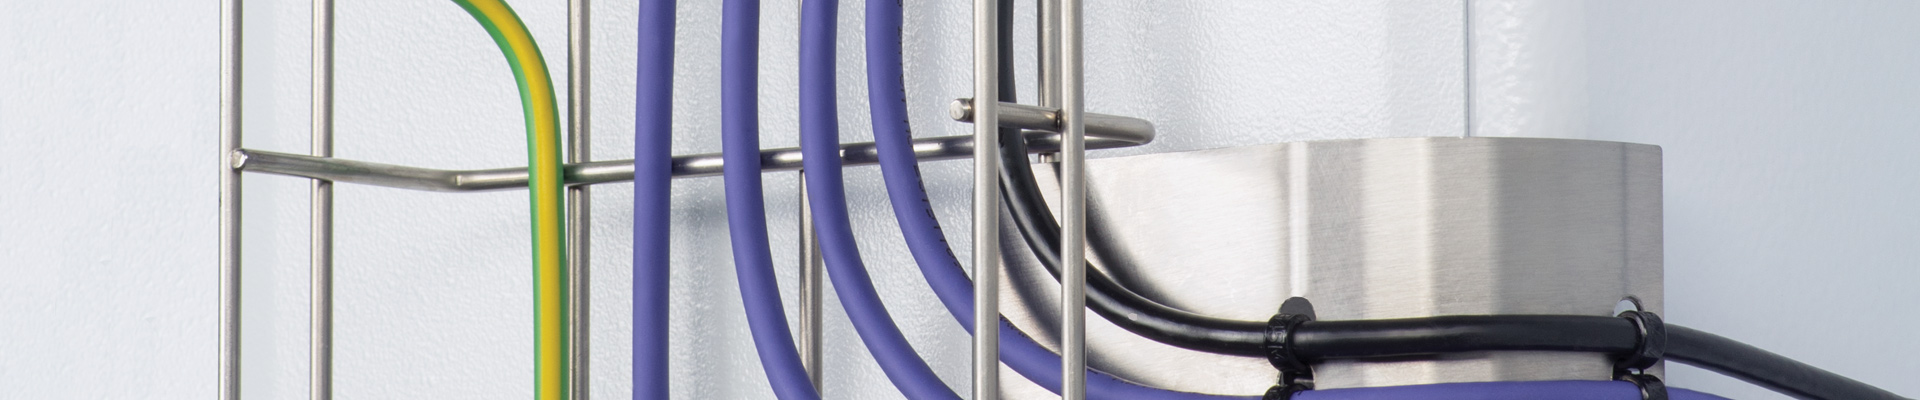 Stainless Steel Wire Basket & Cable Tray Systems